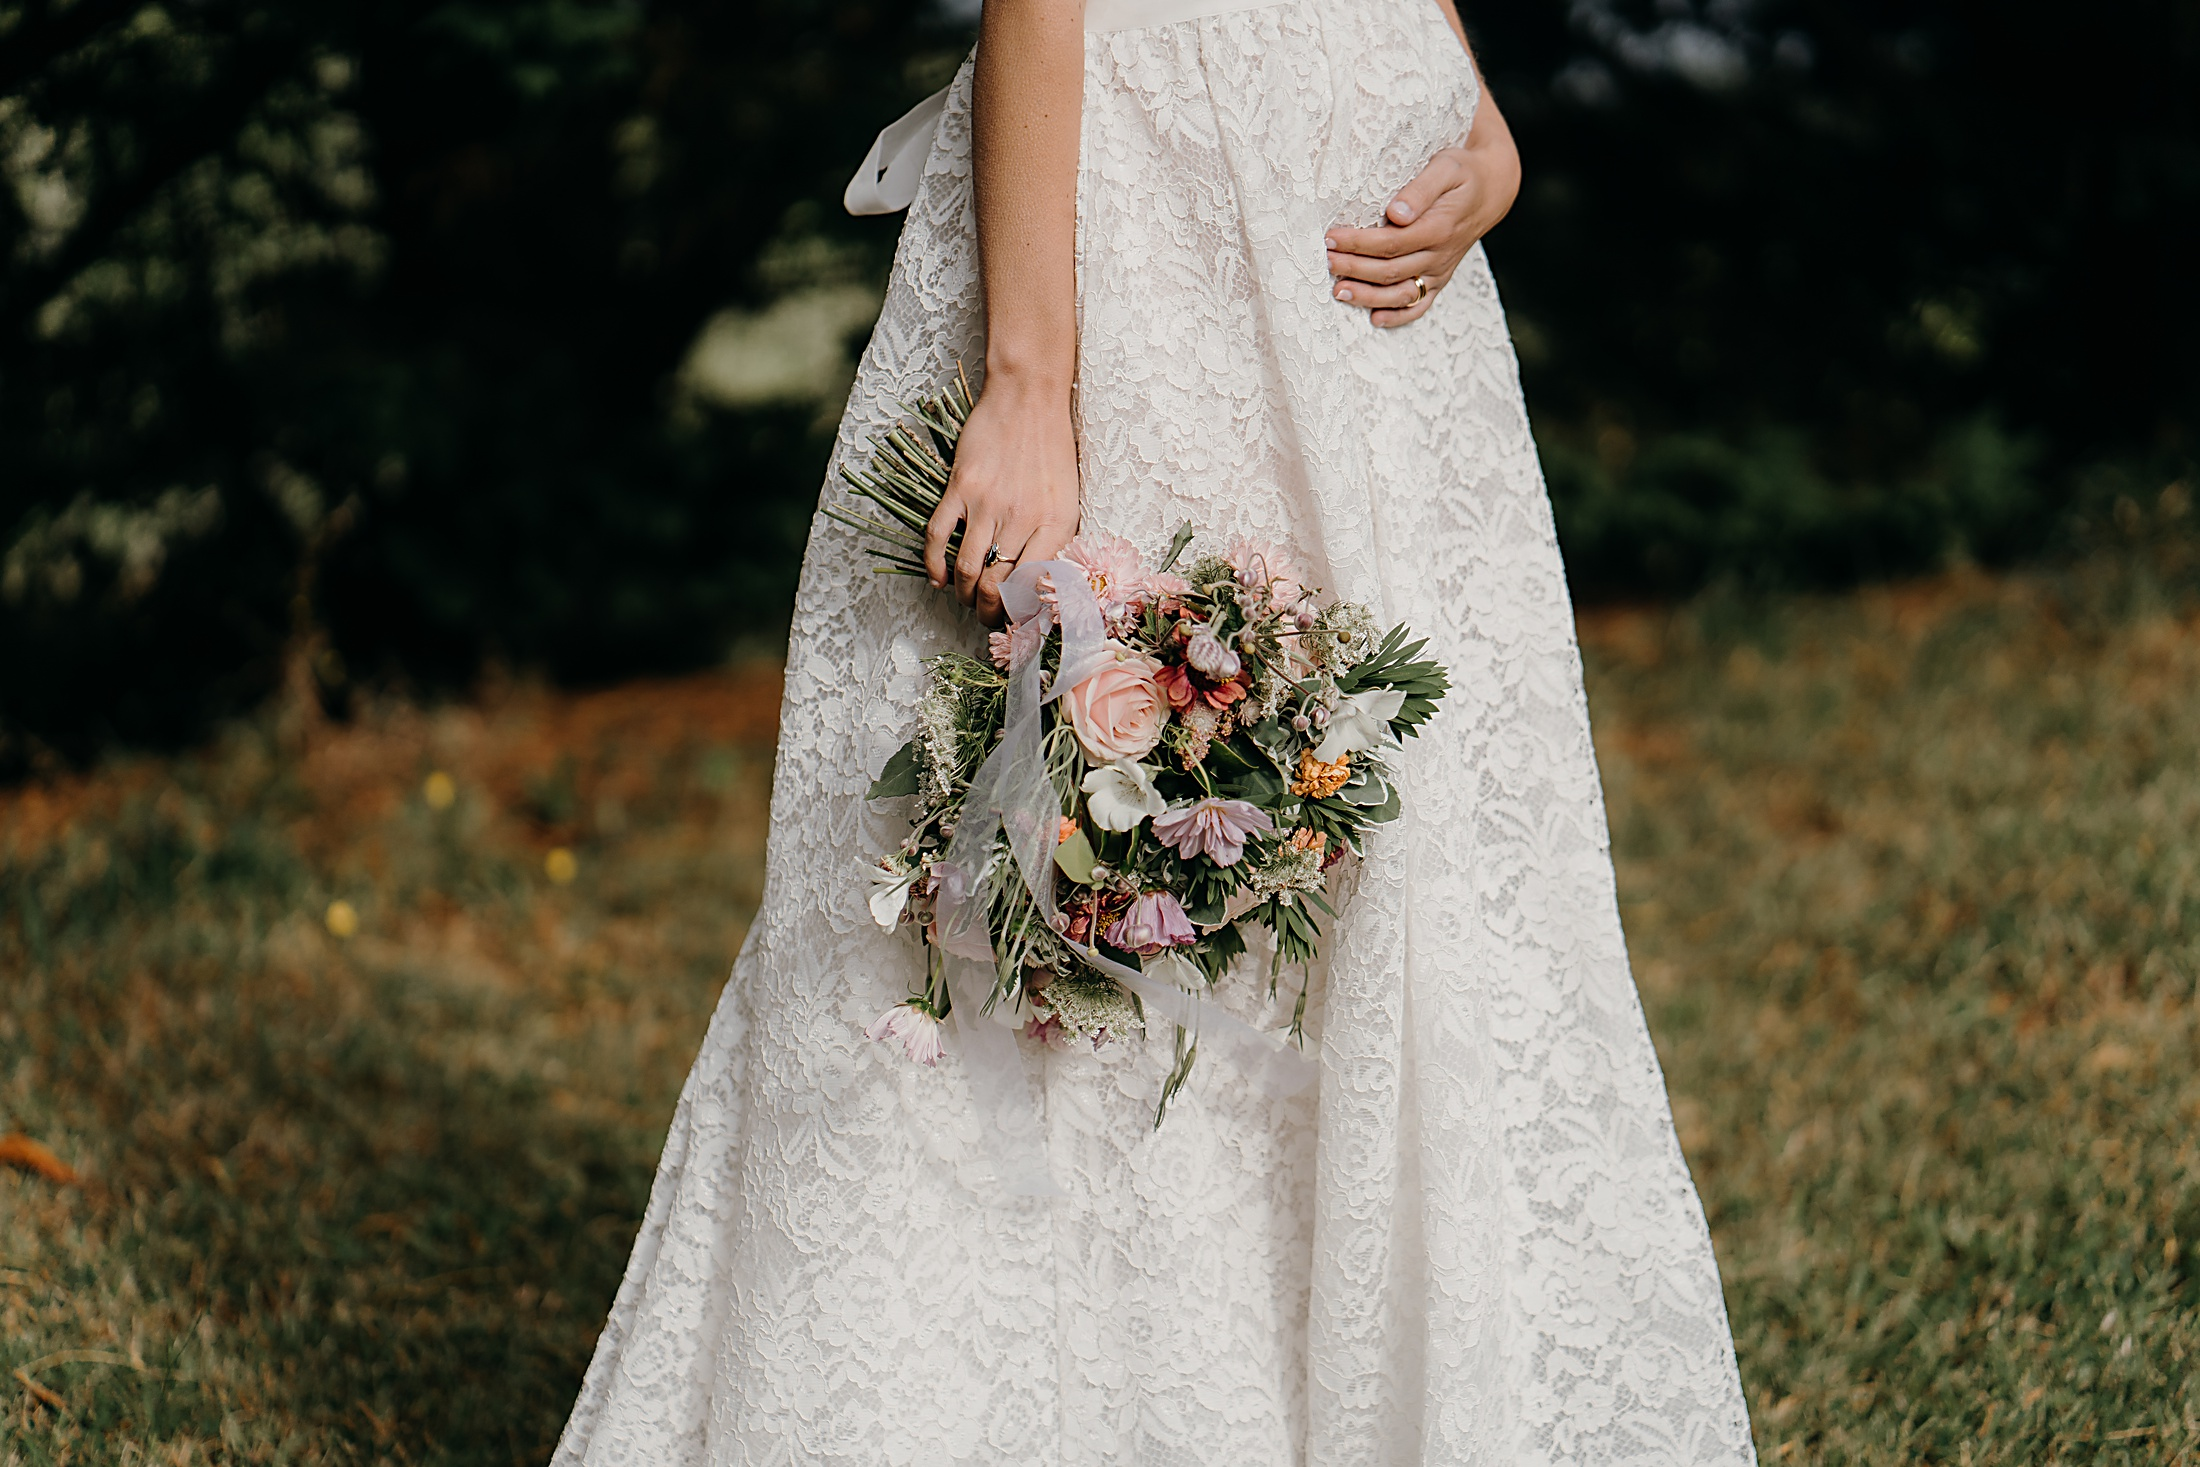 Daisy by Katie Yeung Wedding Dress, baby bump & bouquet